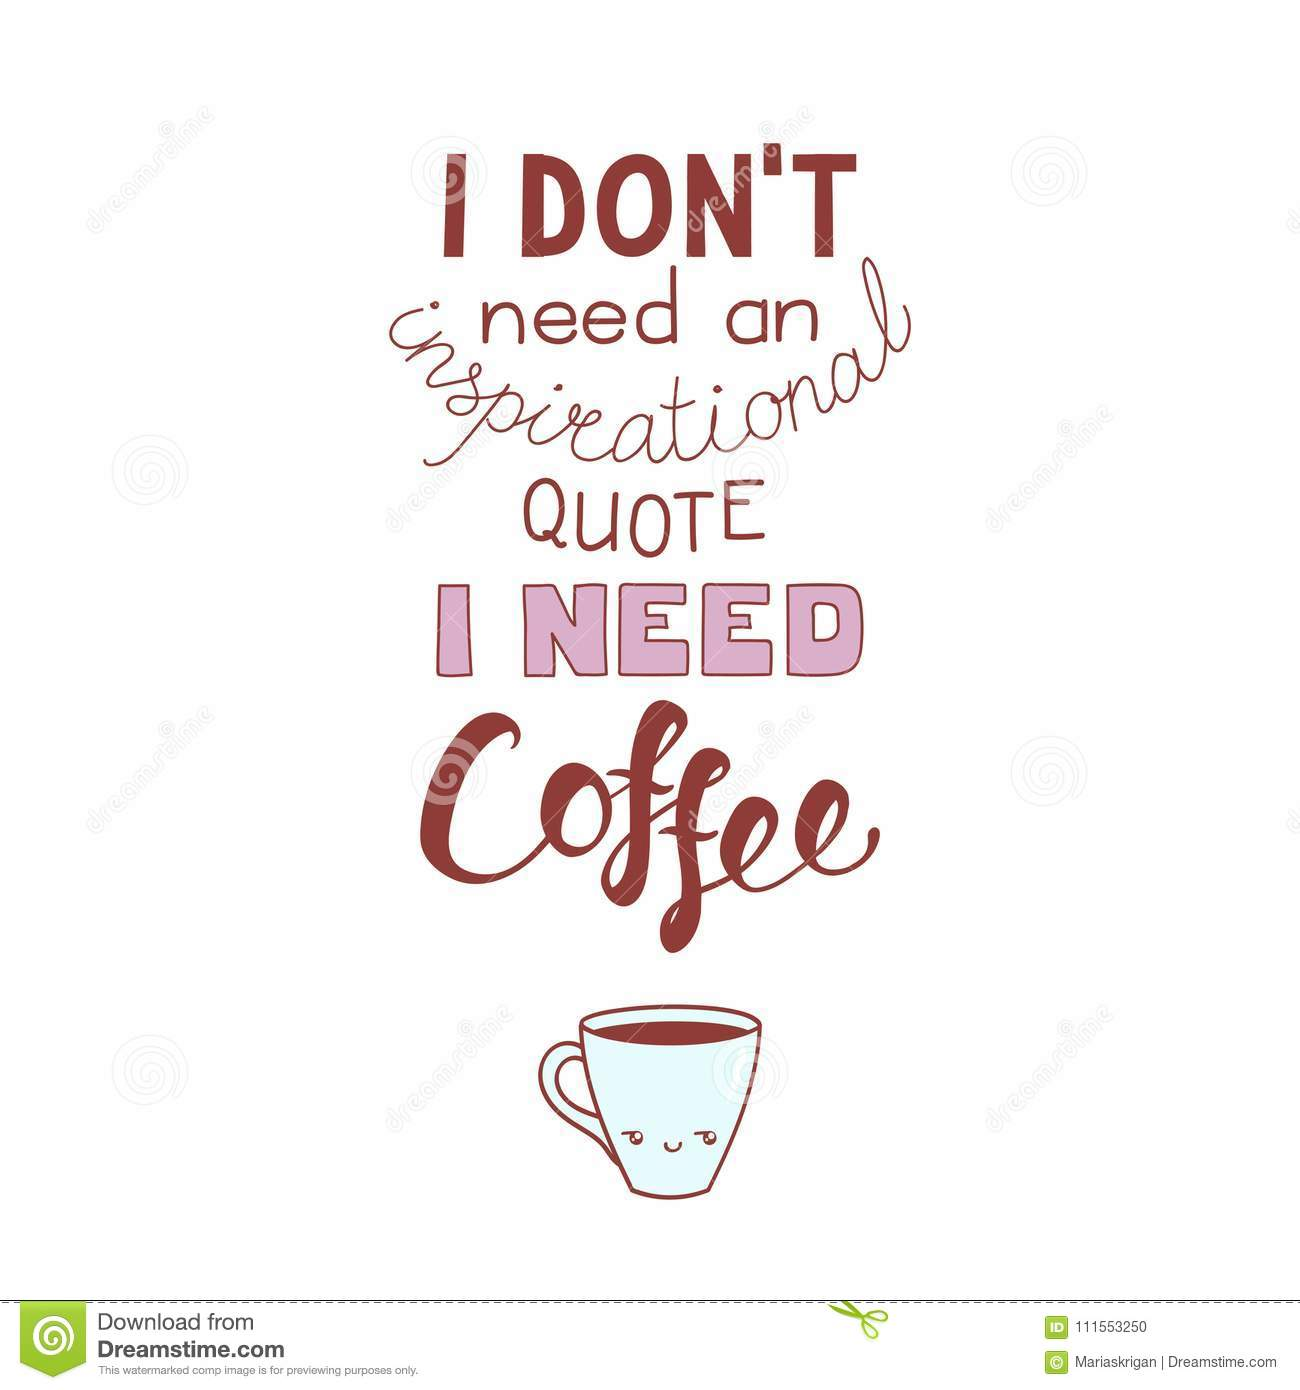 Need Coffee Art Wall Décor Zazzleca